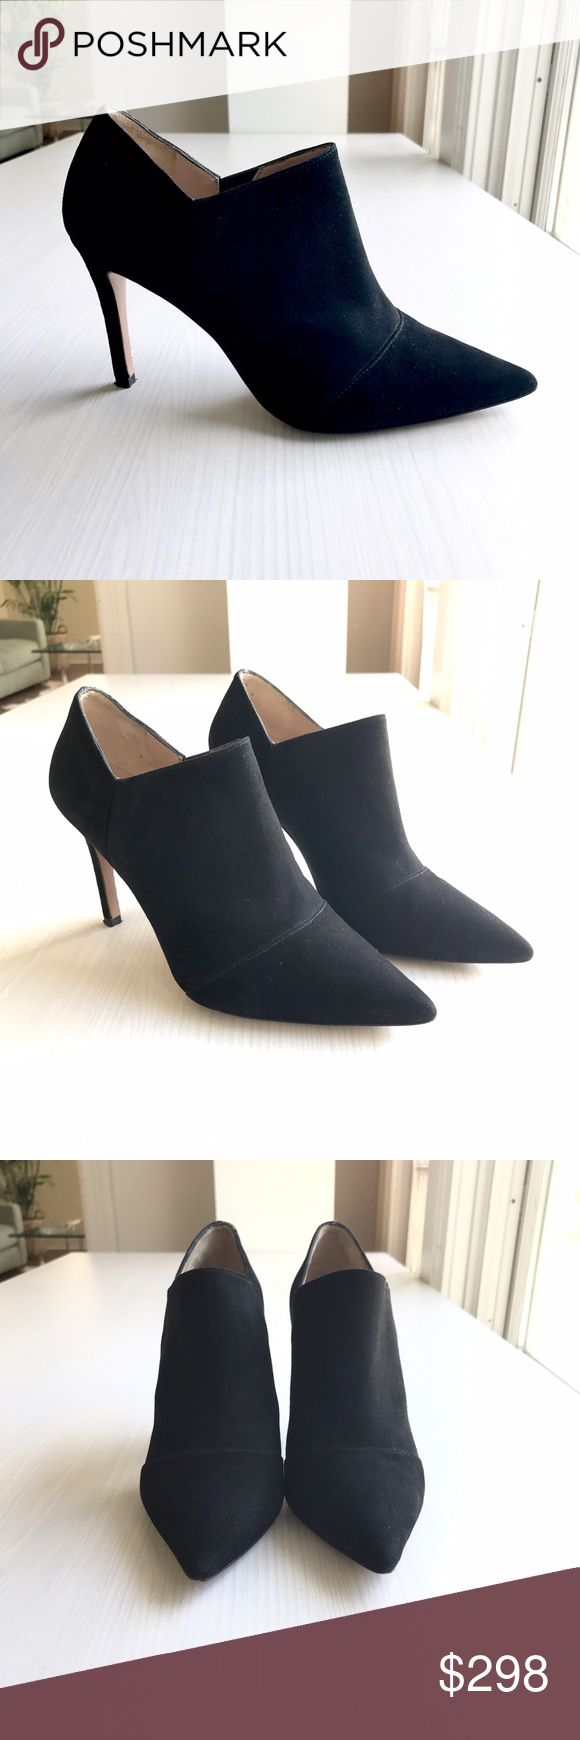 Pura Lopez Black Suede Booties Sleek black suede booties with sharp architectural lines and and sexy ankle cutout. 4 1/2 in. stiletto. Runs a smidge small - only worn once. Listing as a true size 8 (manufacturer says 8 1/2). Otherwise I love them - wish they fit me! Purchased at an upscale San Francisco boutique. Pura Lopez Shoes Ankle Boots & Booties